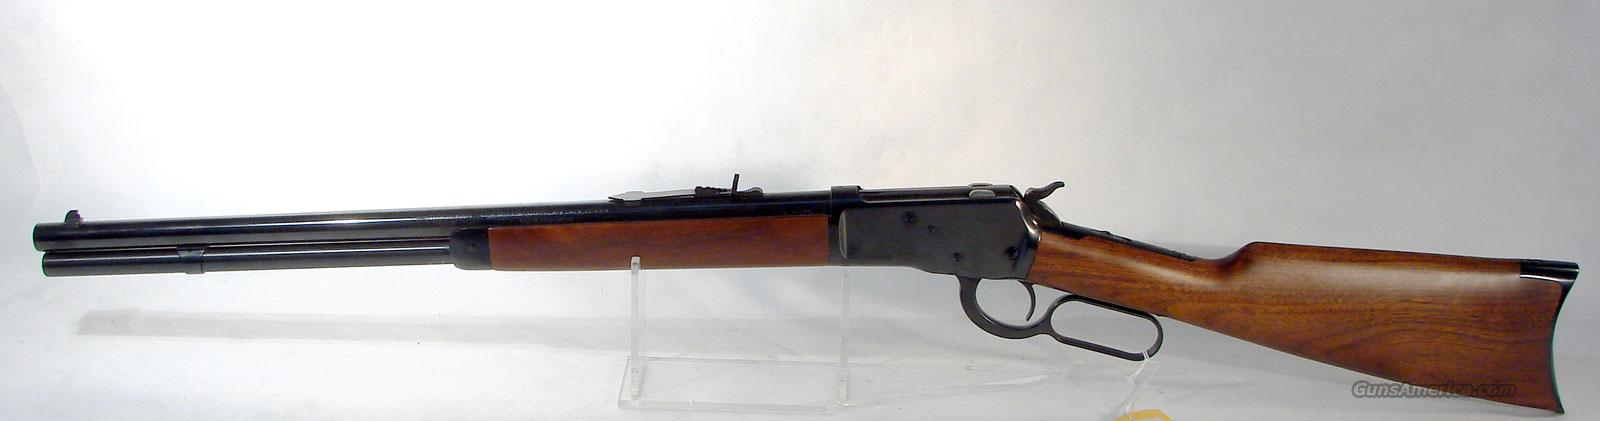 Winchester 1892 Lever Action .44 mag  Guns > Rifles > Winchester Rifles - Modern Lever > Other Lever > Post-64